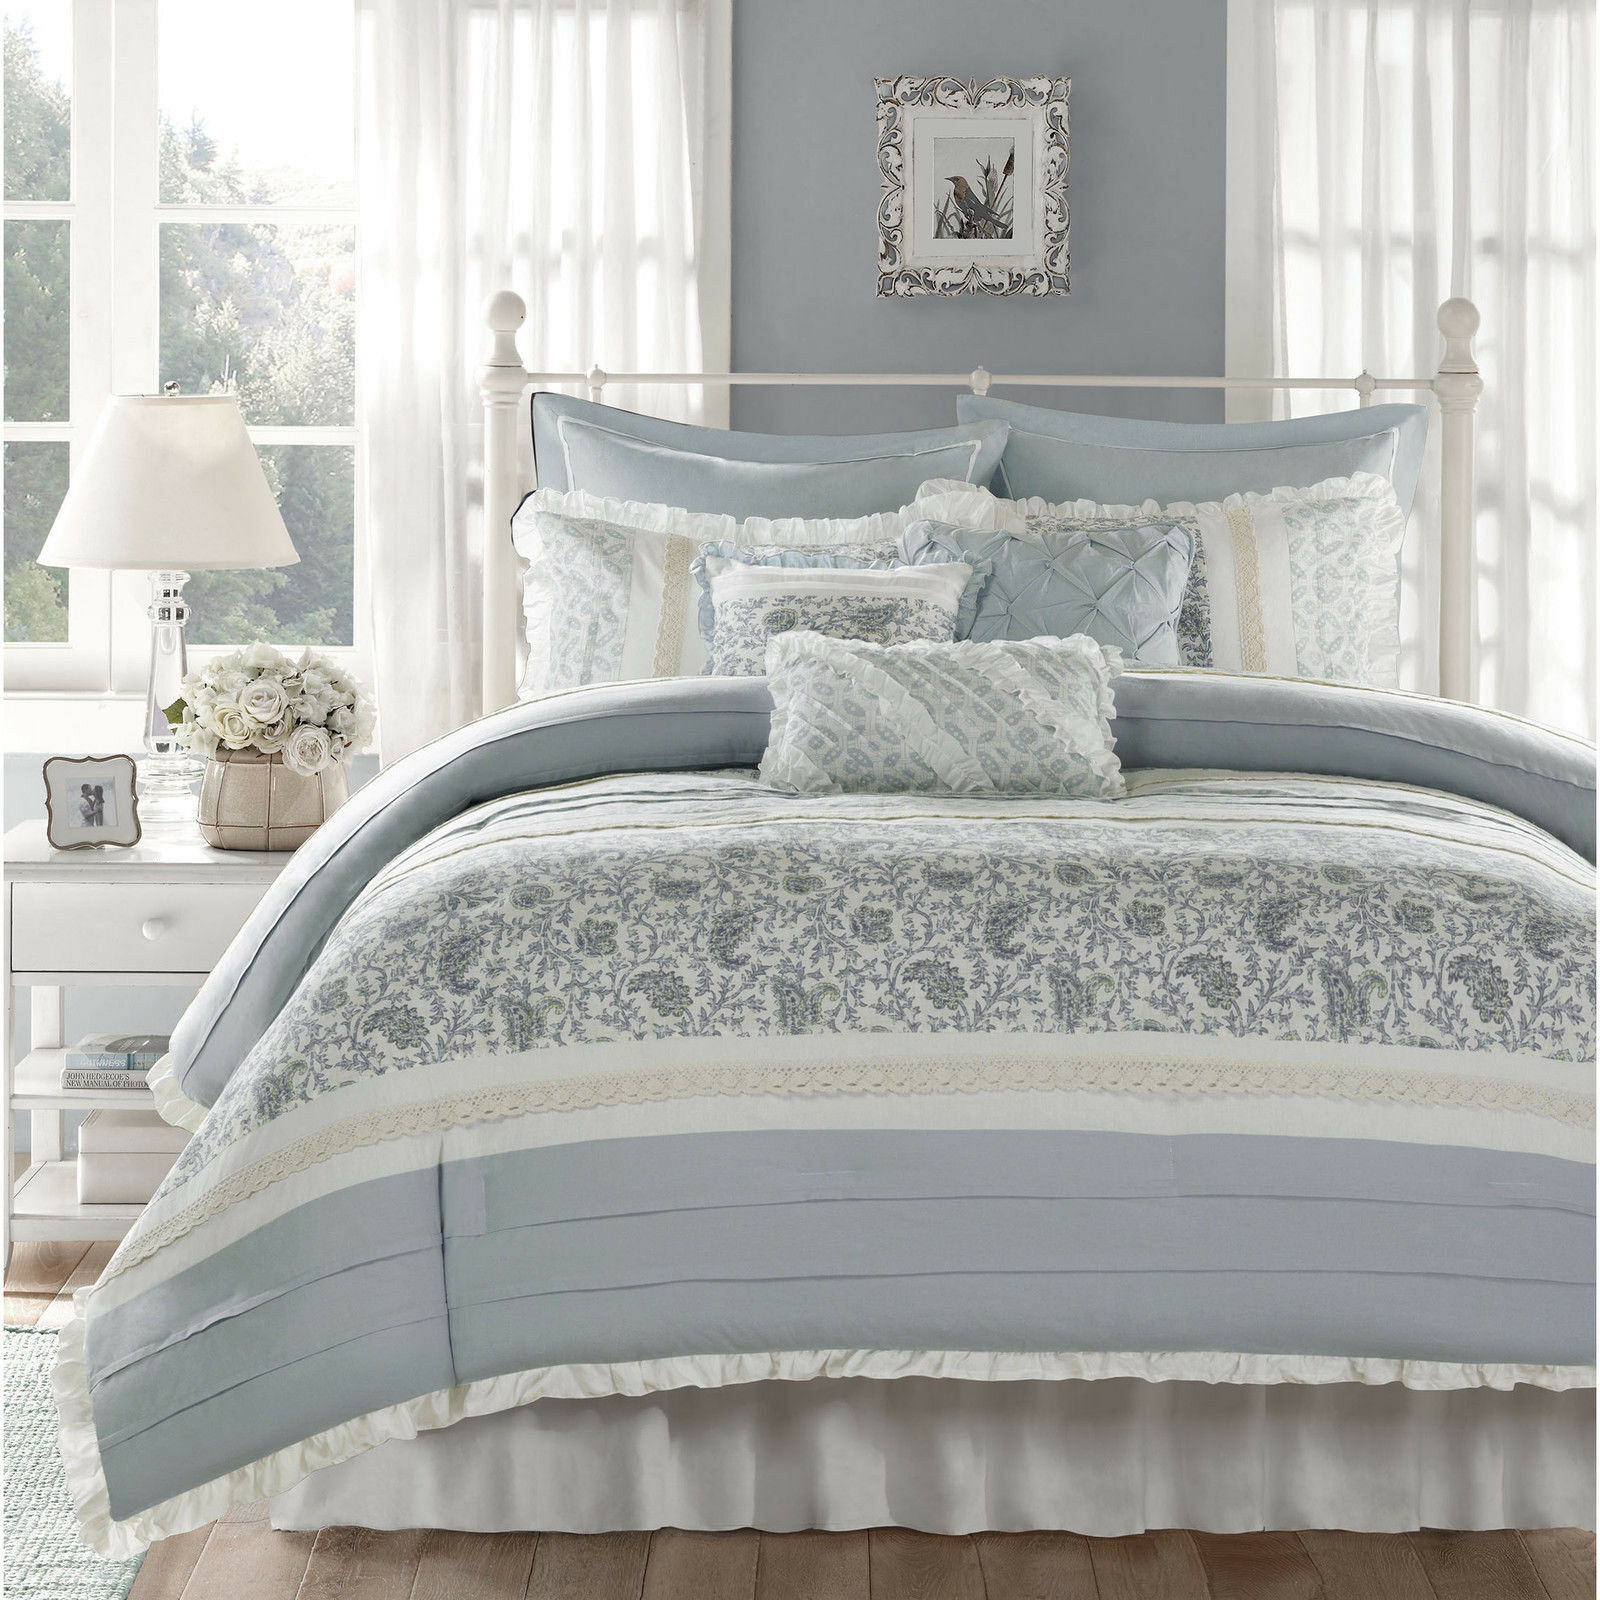 BEAUTIFUL COTTAGE Blau Weiß grau COUNTRY LACE RUFFLE COTTON DUVET COVER SET NEW